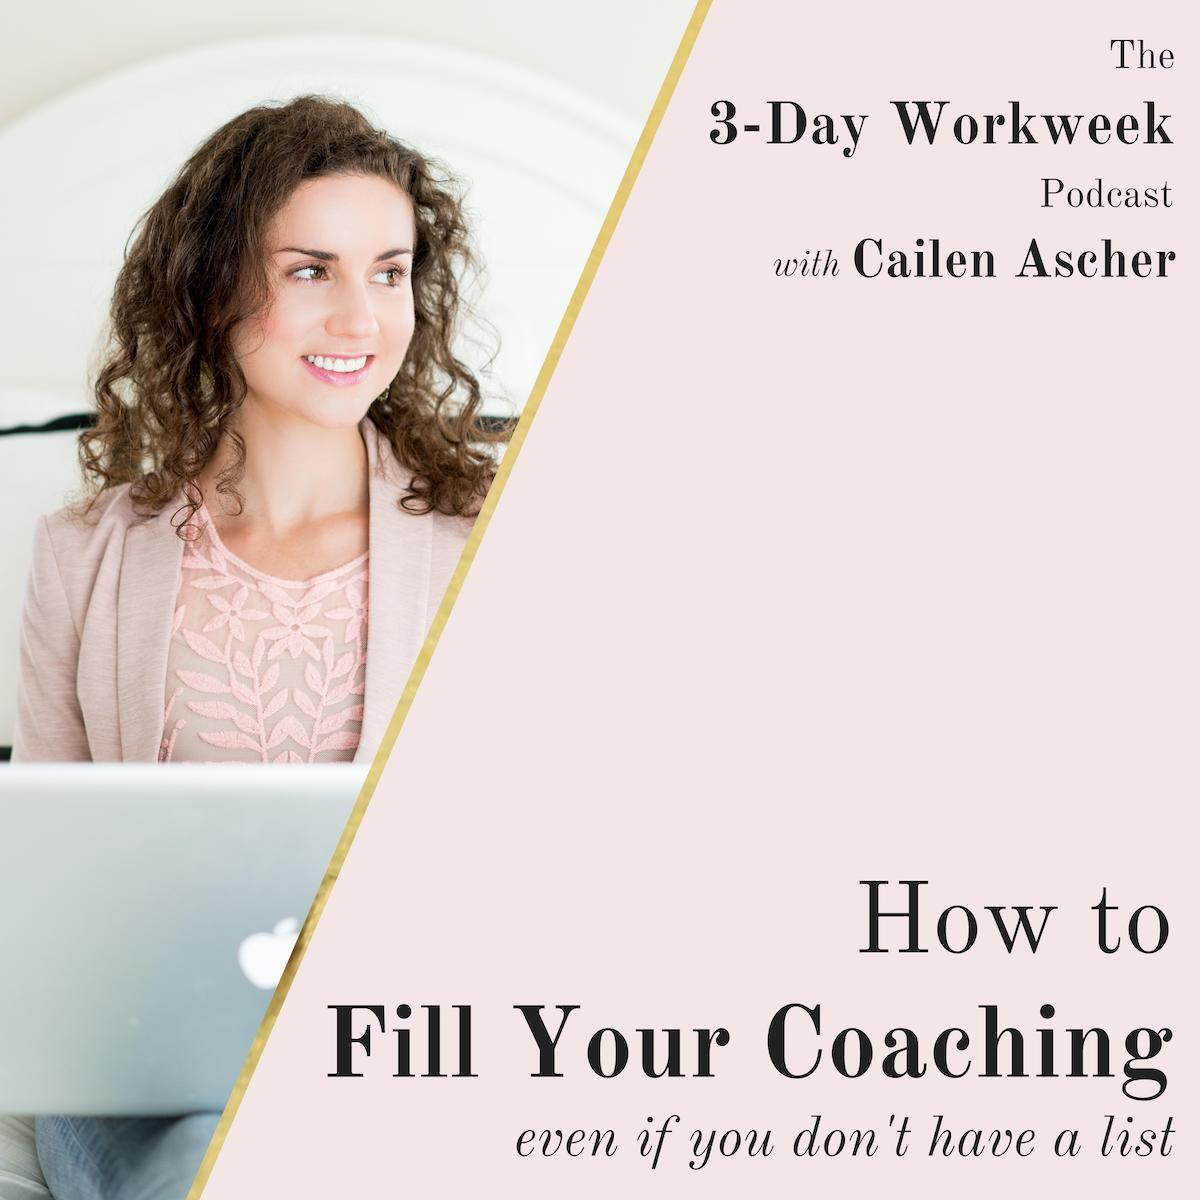 The 3-Day Workweek Podcast with Cailen Ascher - 2019-05-29 - Fill Your Coaching.jpg